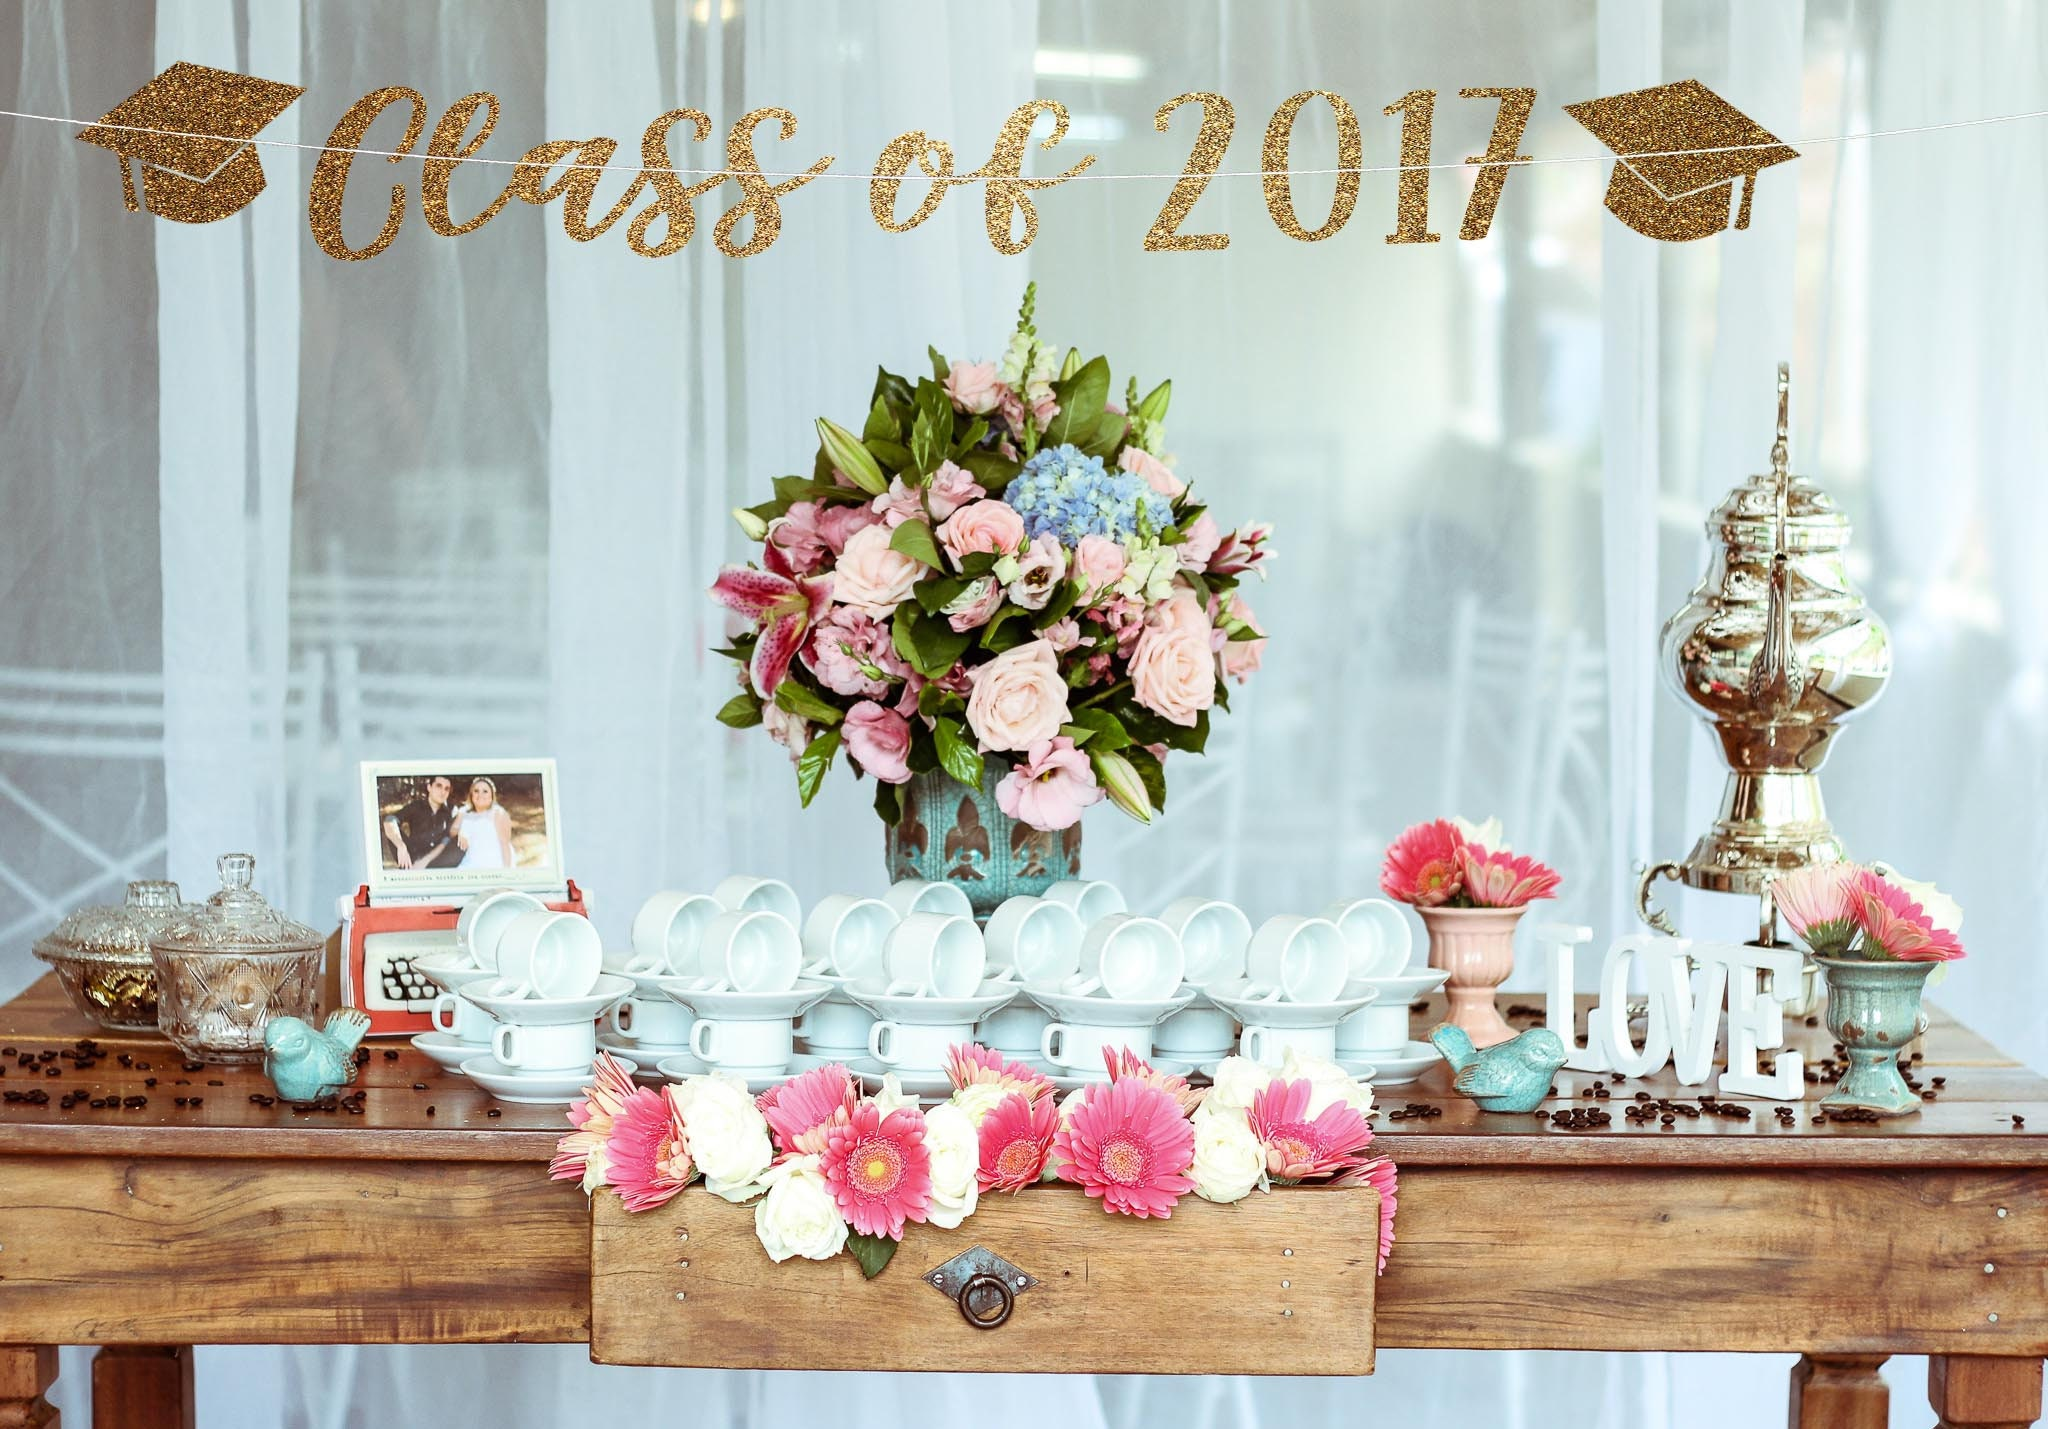 Class of 2017 banner graduation party decorations high for Party backdrop ideas